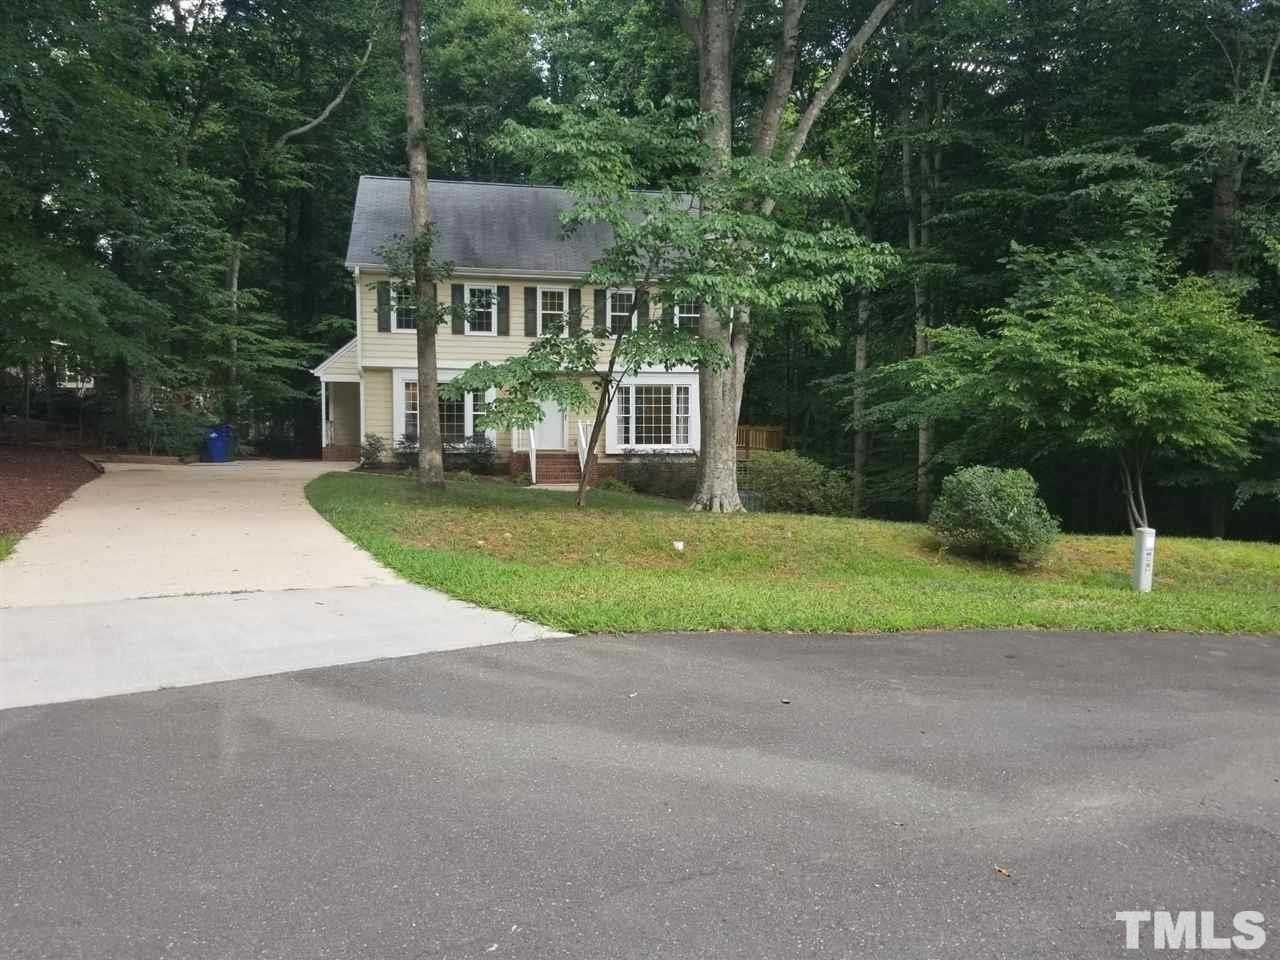 $2,500 - 3Br/3Ba -  for Sale in Sandy Chase, Raleigh